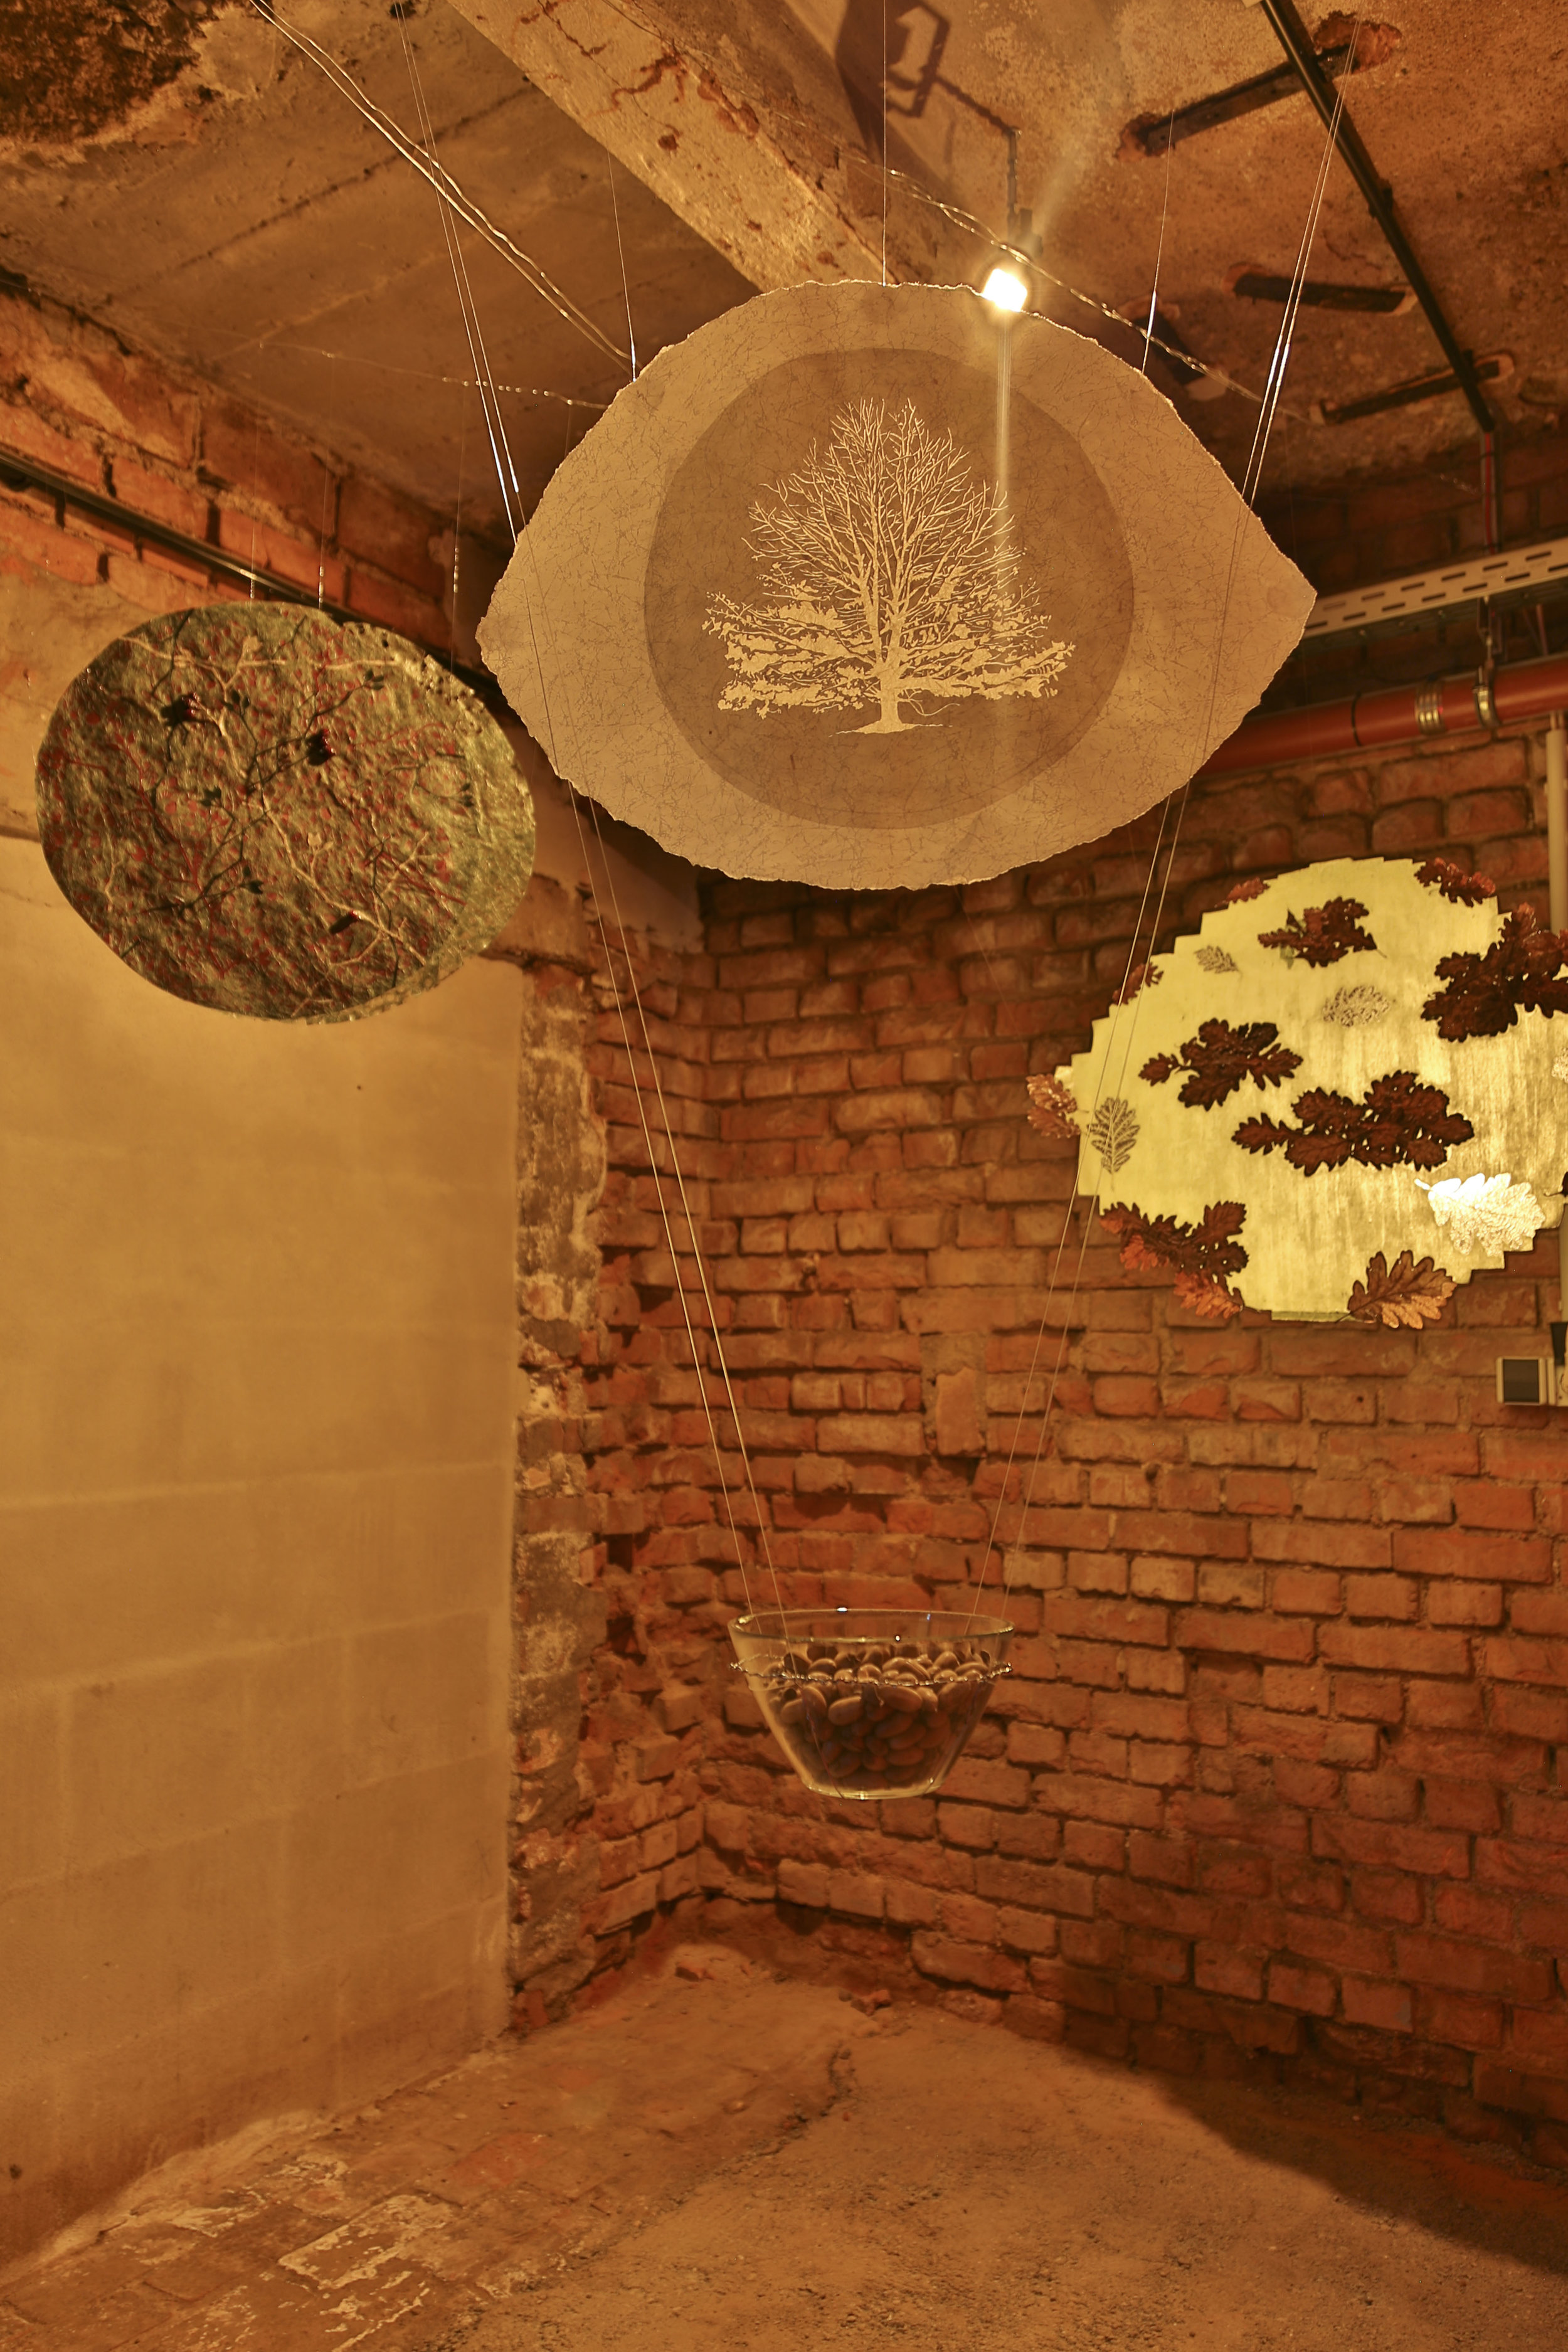 Documentation of my installation by Coffee Kang